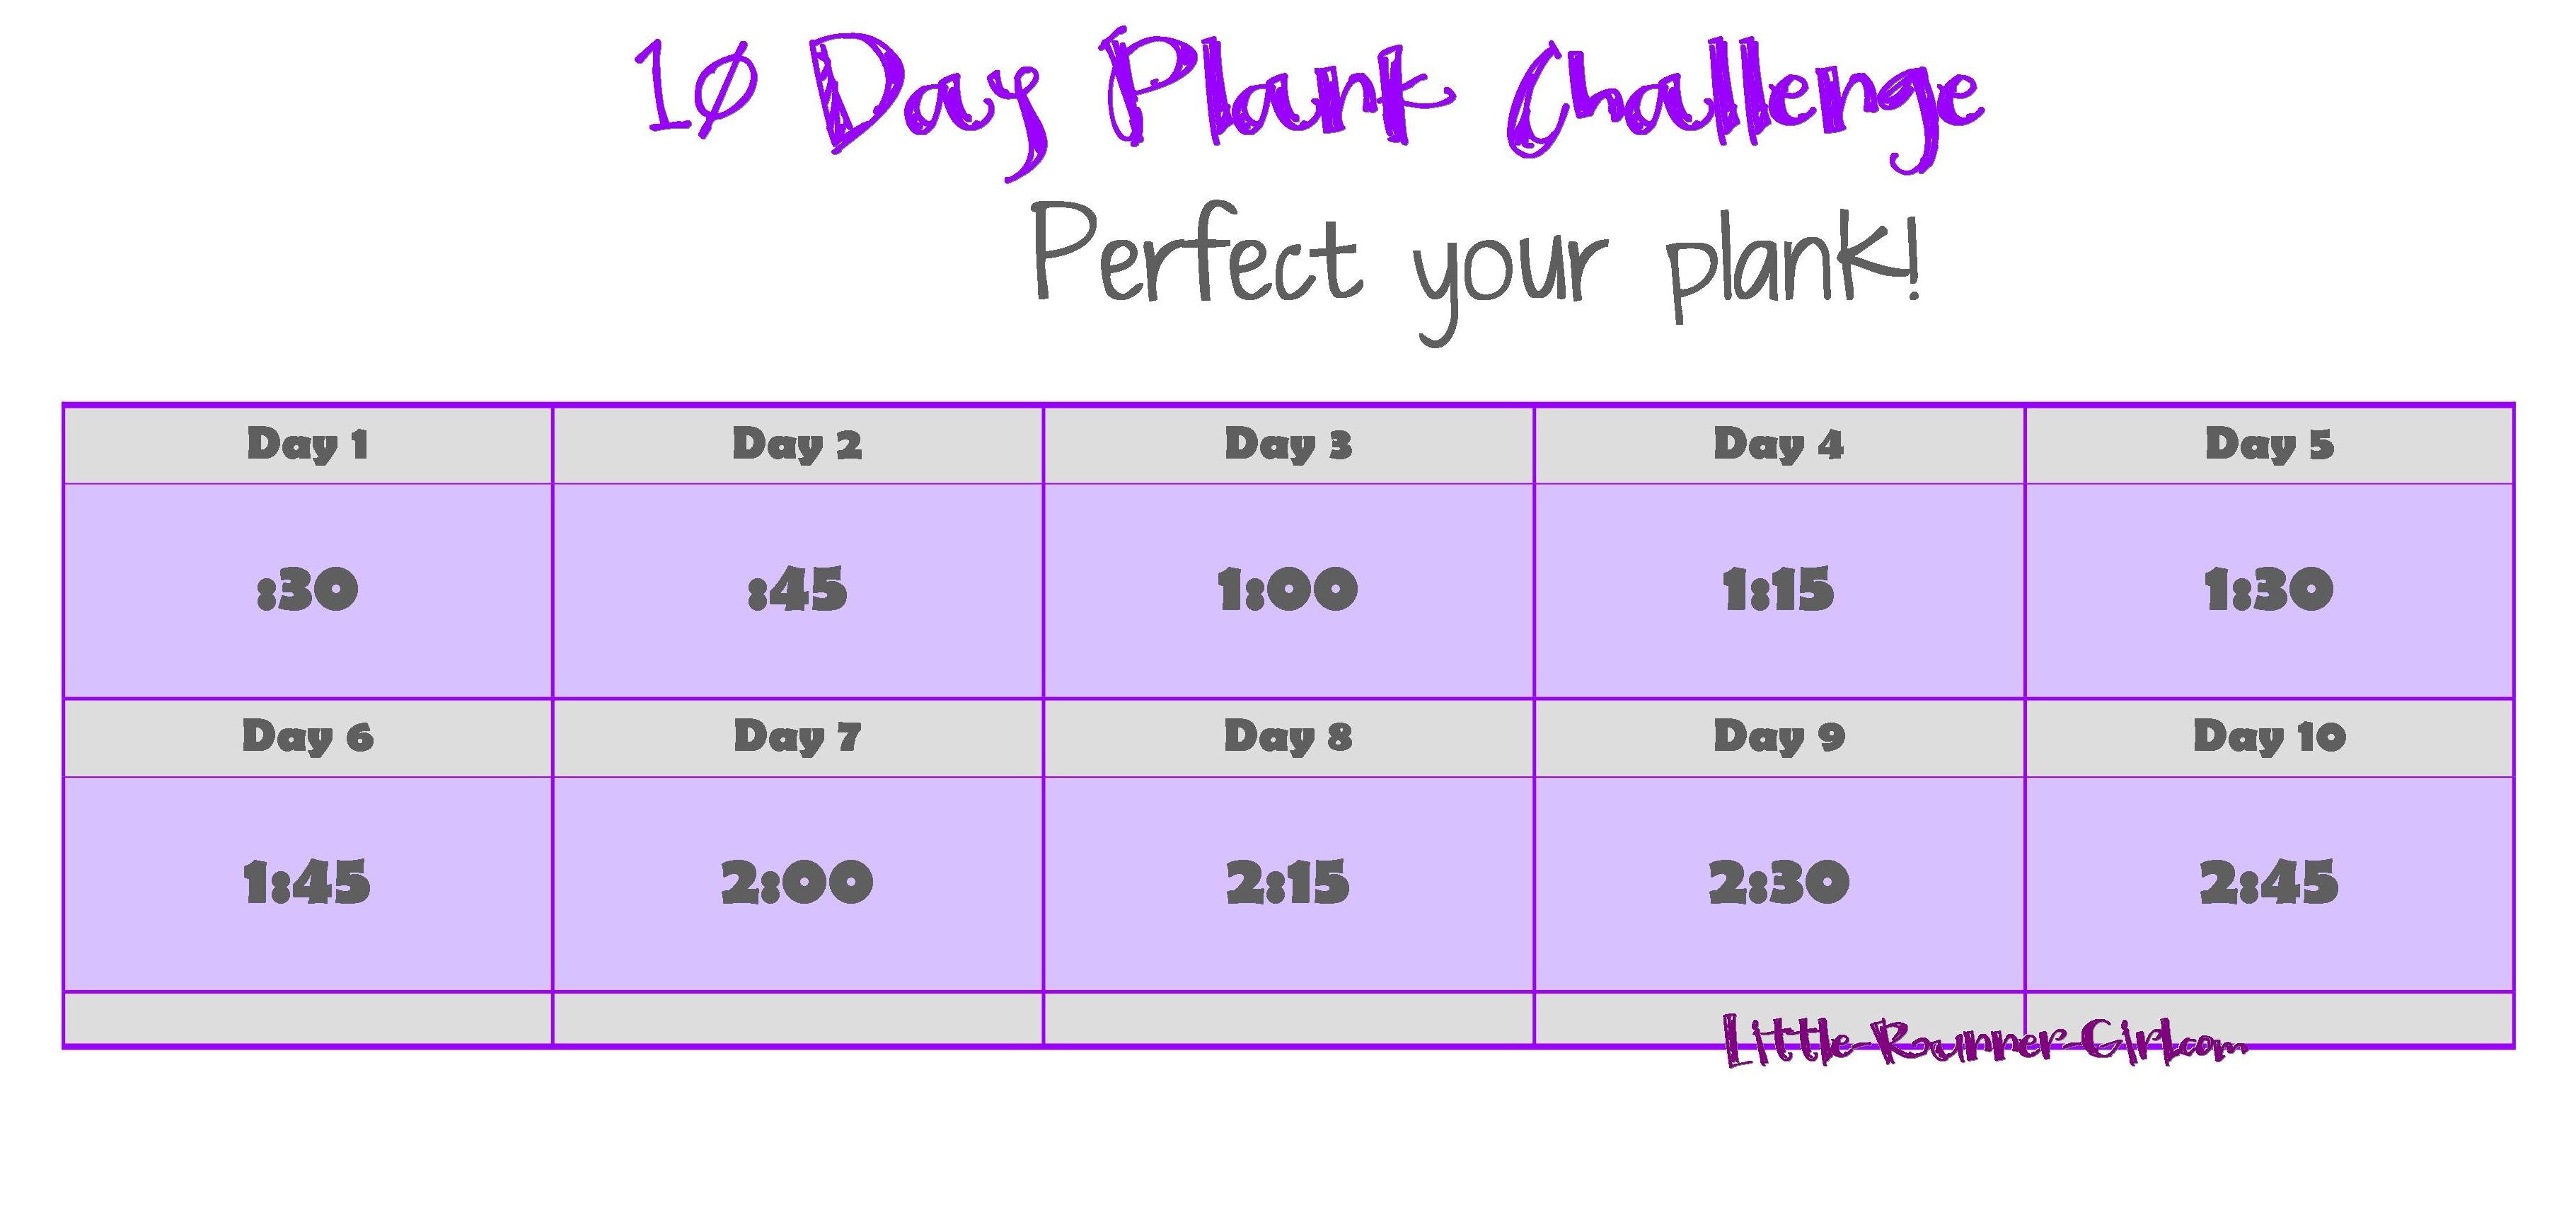 photo about Plank Challenge Printable known as Armed Fantastic Working day 1: 10 working day plank concern GNC Toned